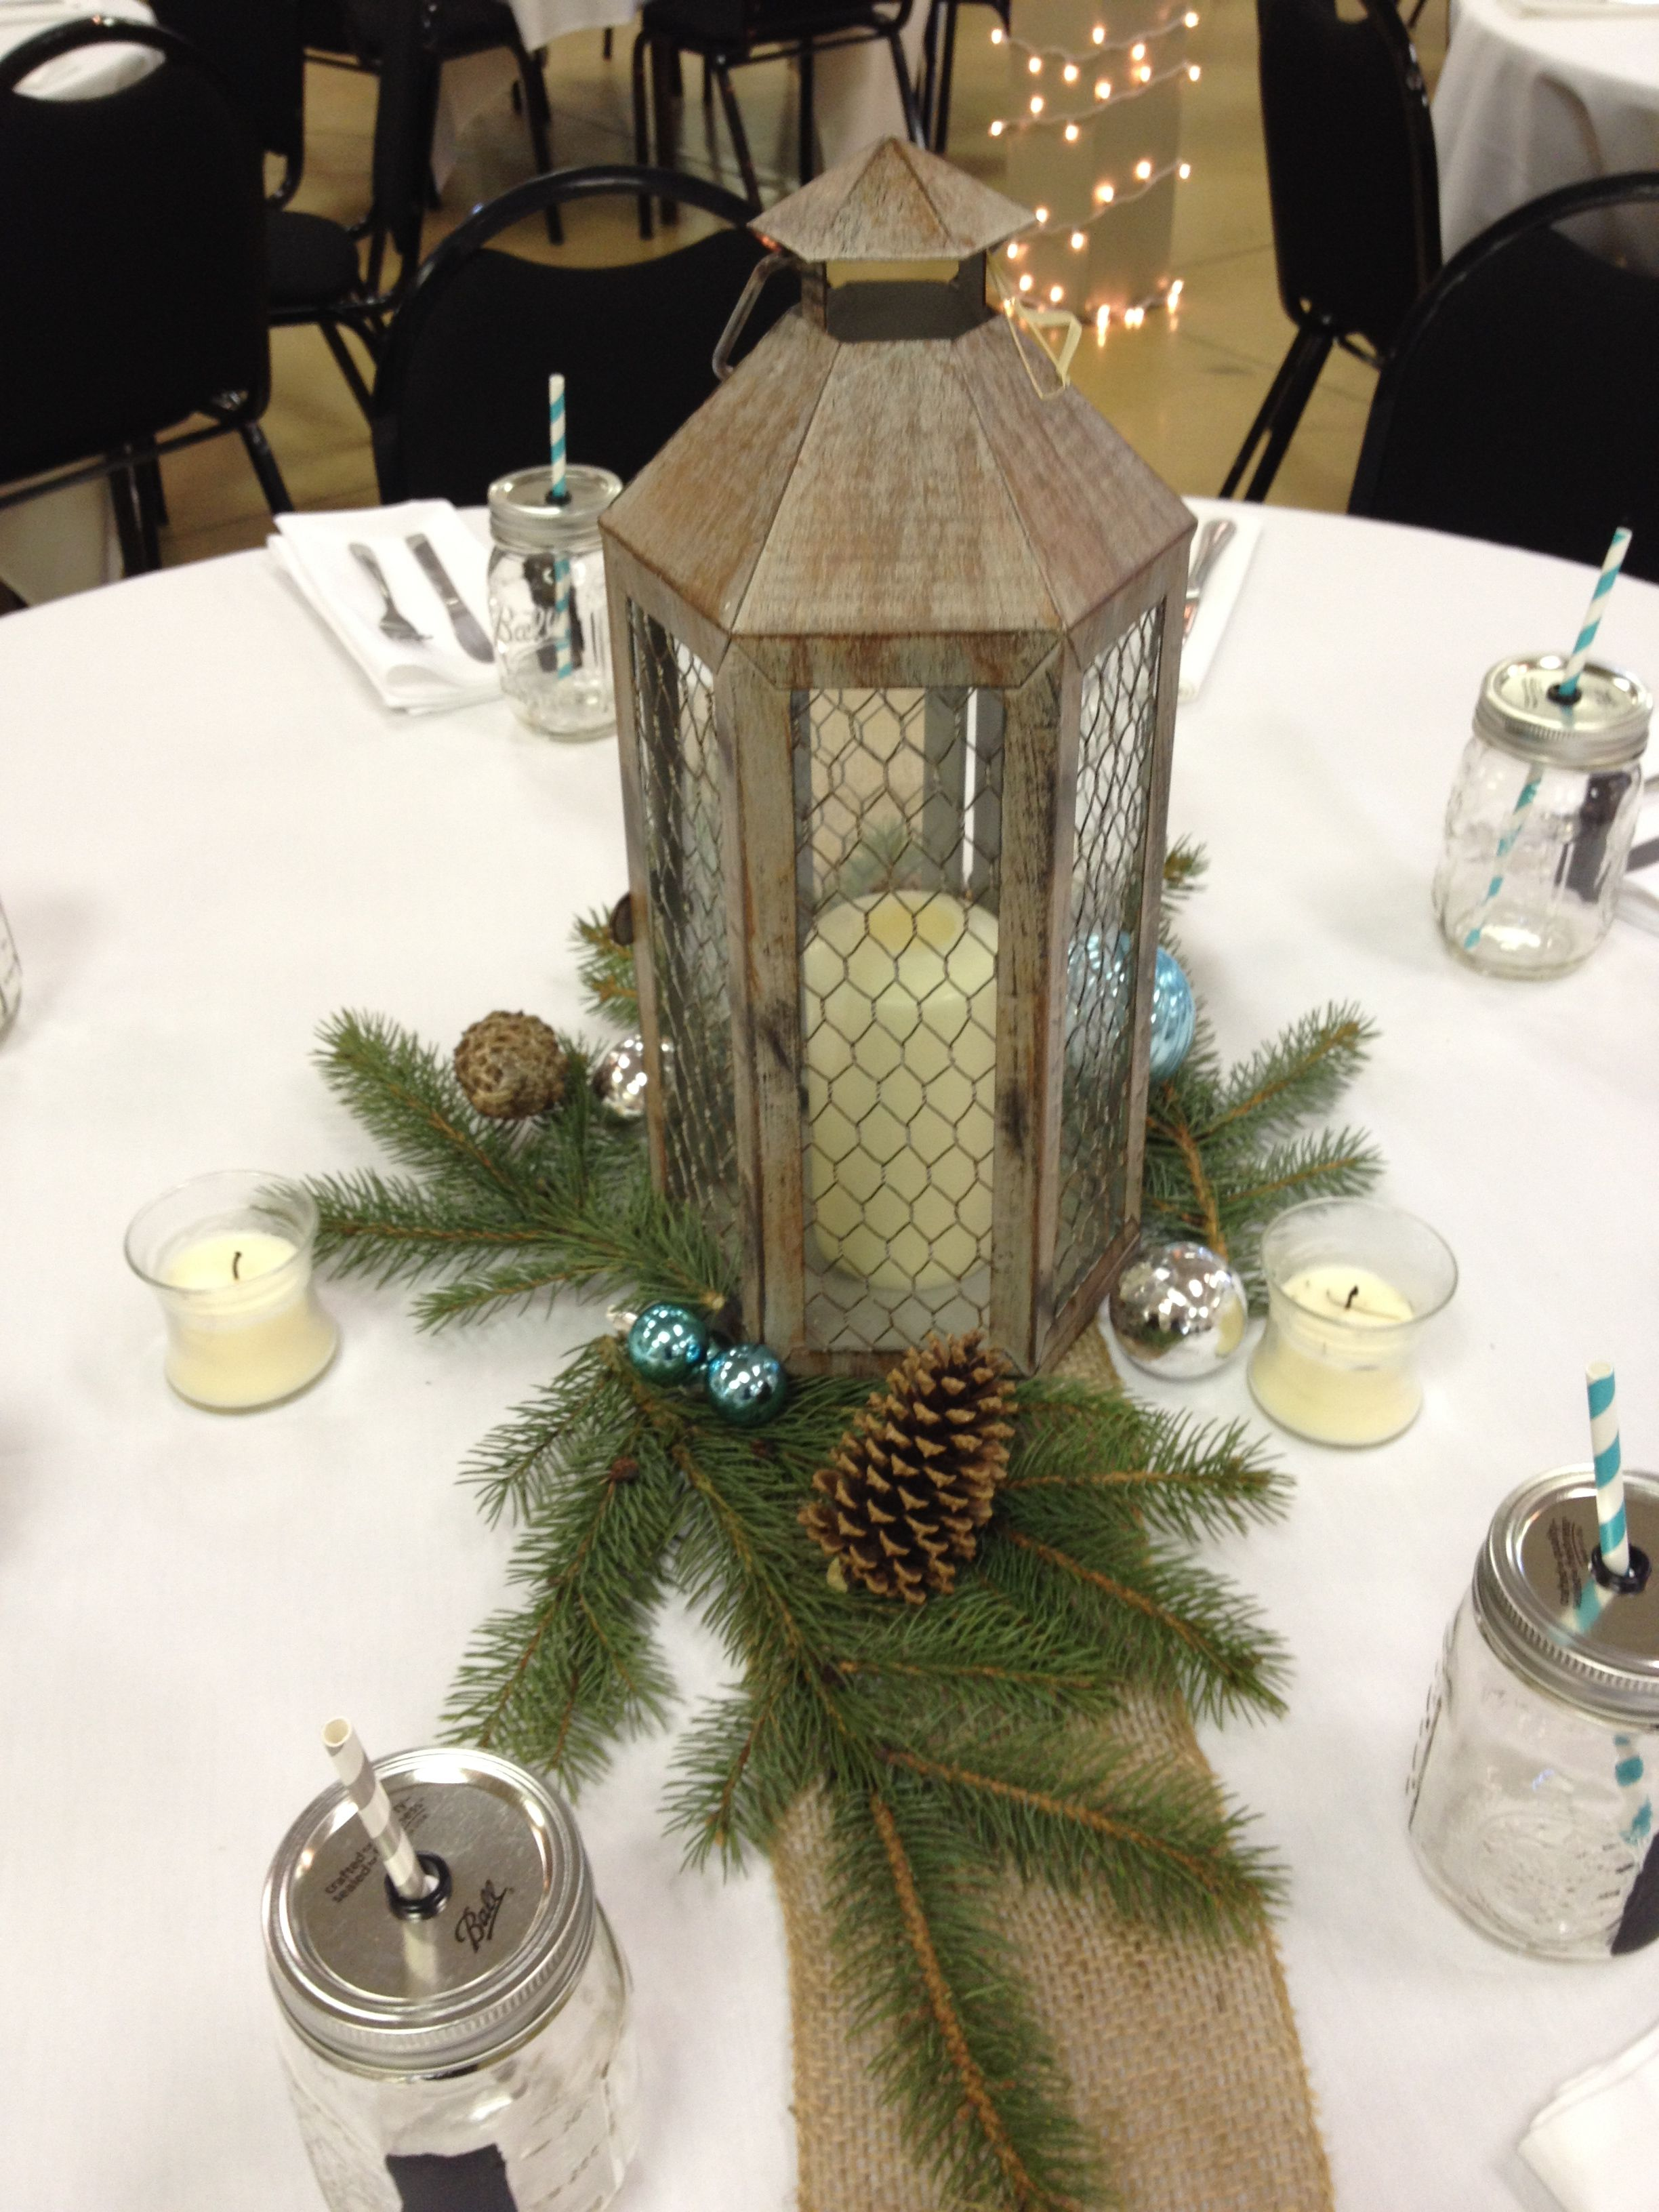 Simple Winter Wedding Centerpiece With A Lantern In The